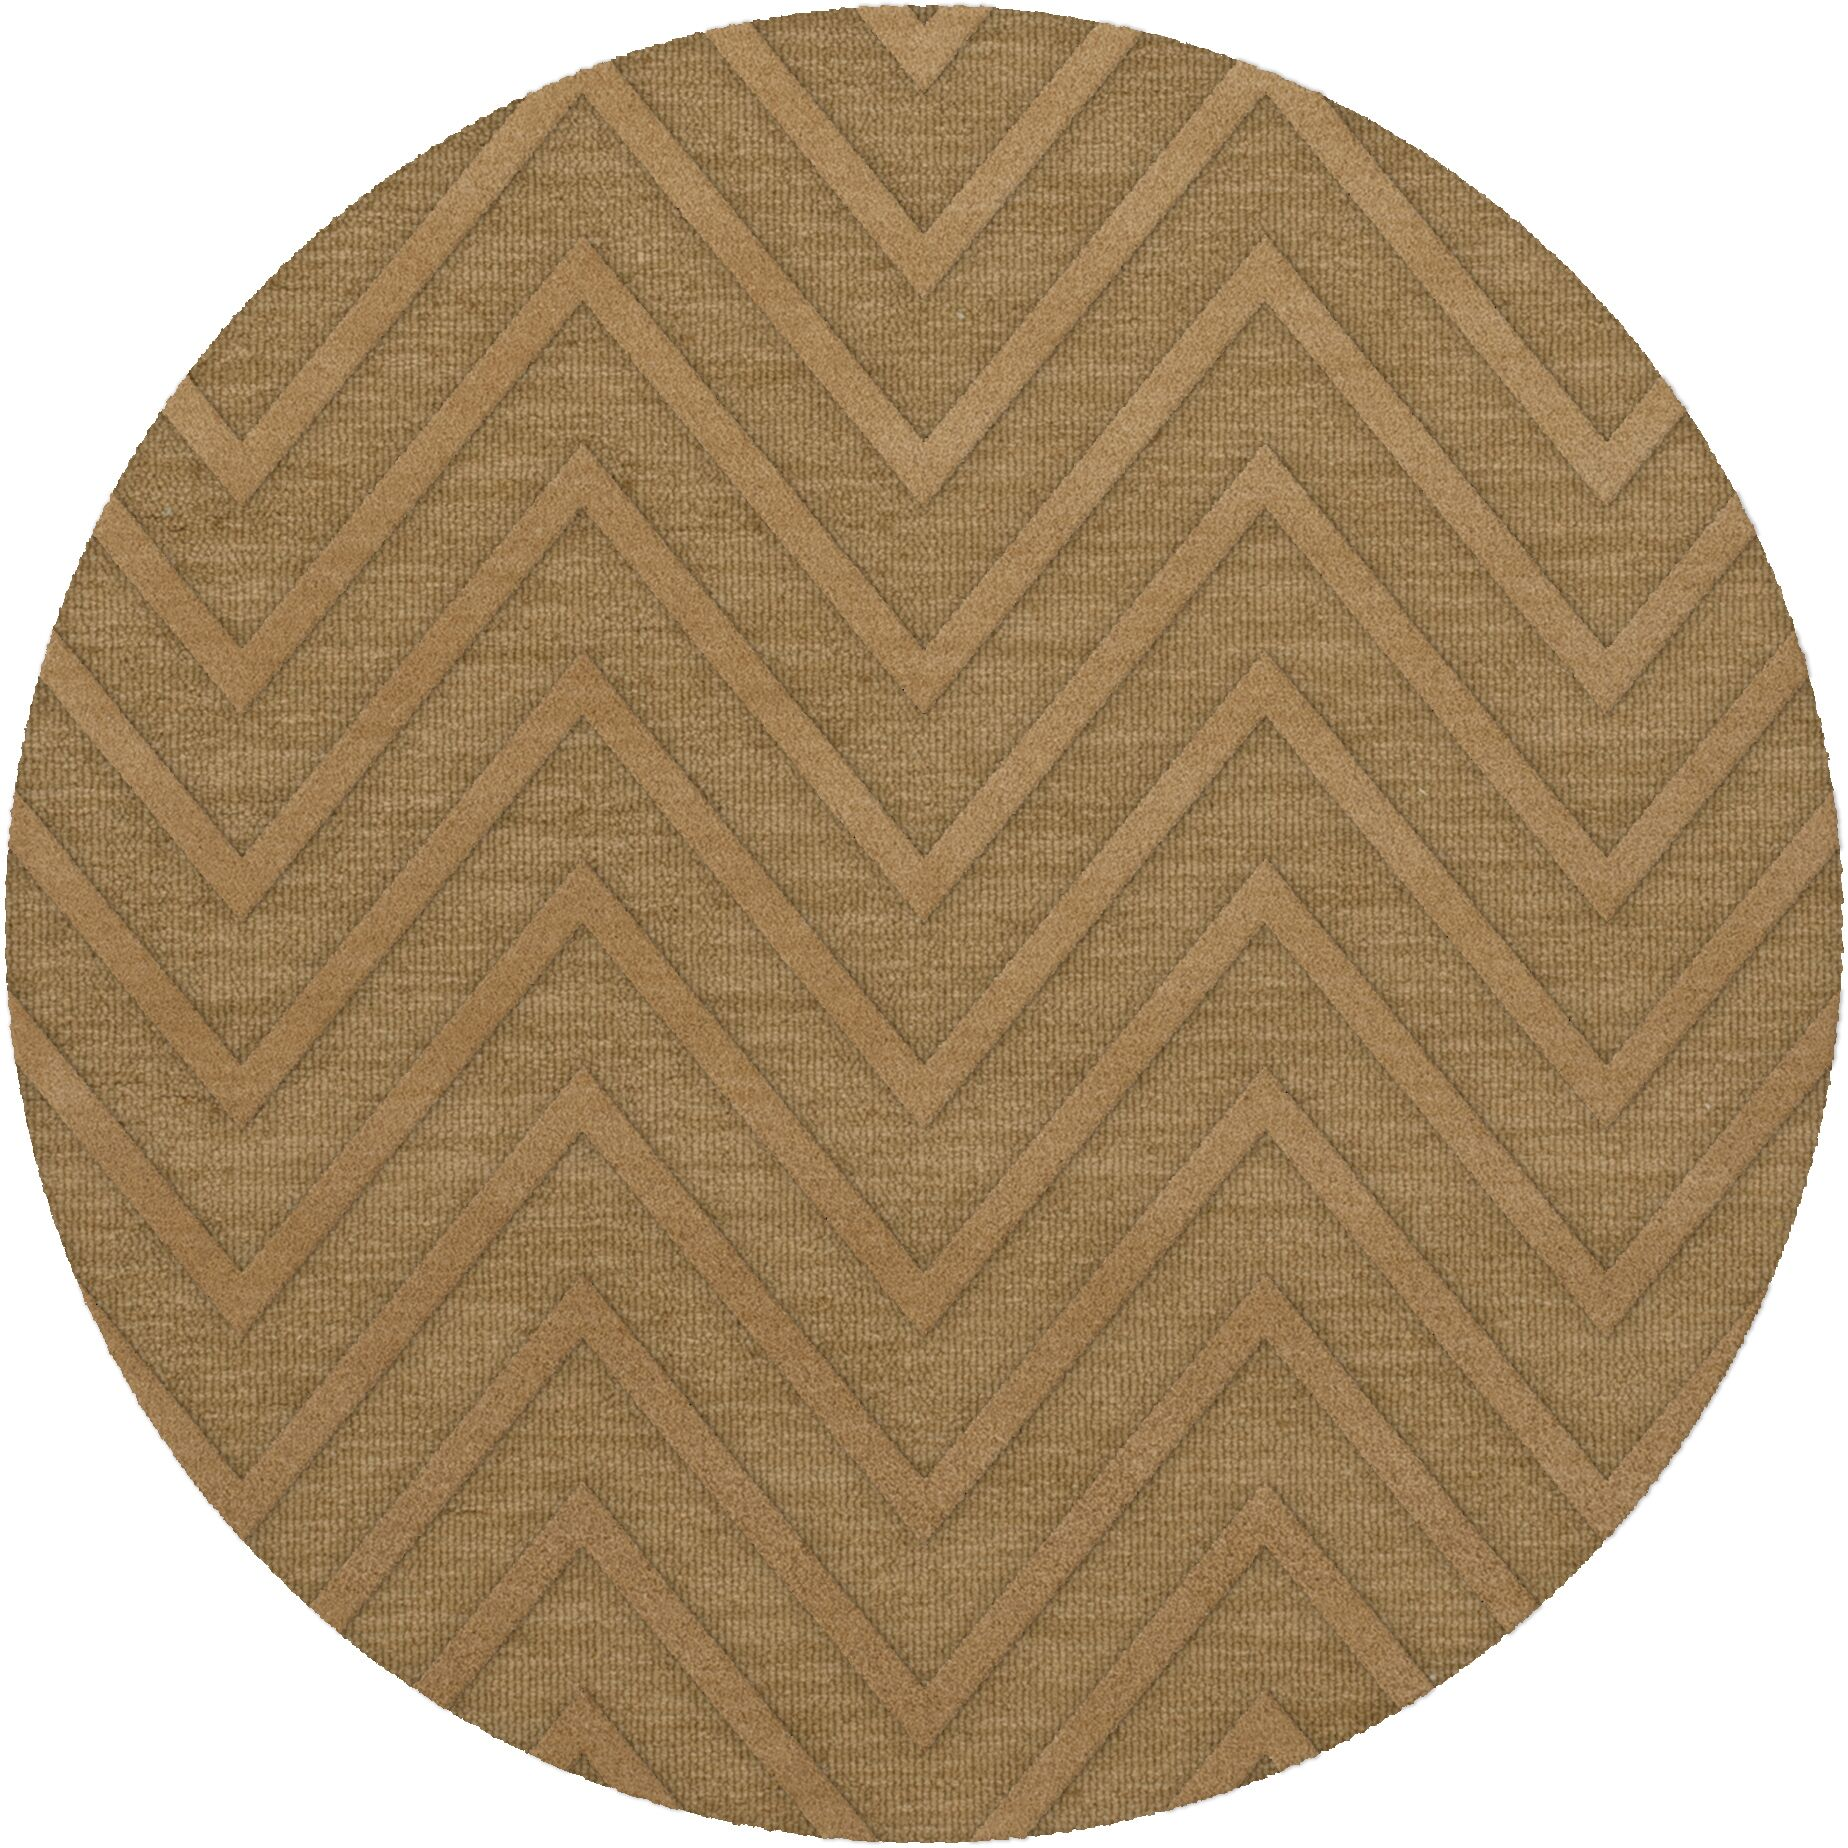 Dover Tufted Wool Wheat Area Rug Rug Size: Round 10'